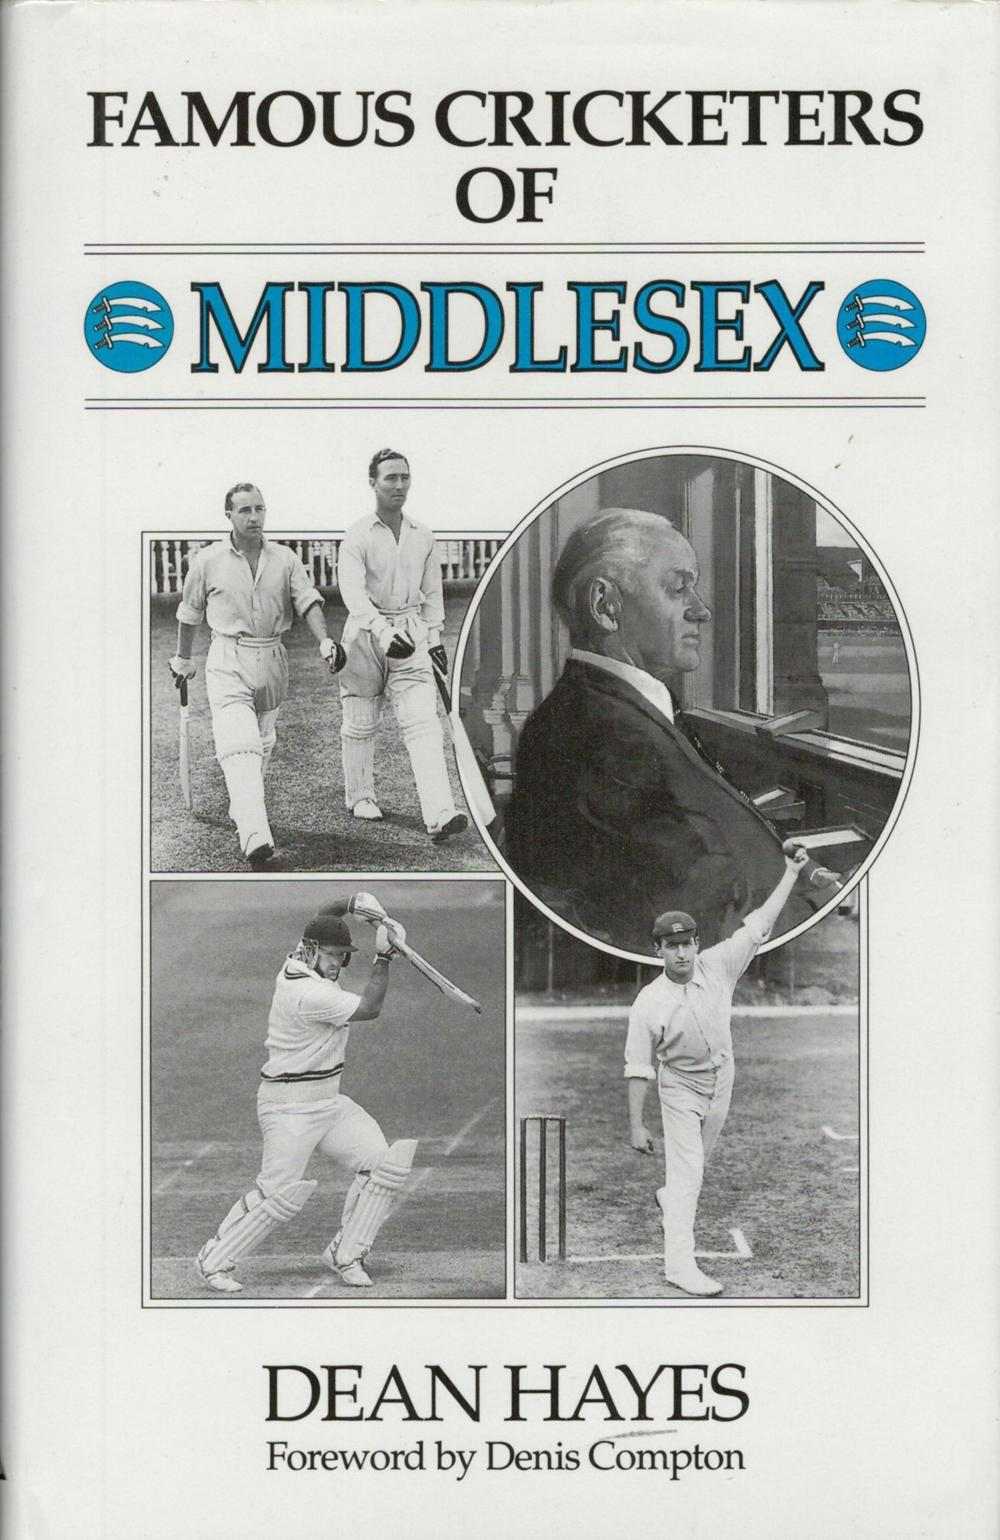 Cricket, Famous Cricketers of Middlesex by Dean Hayes Published in 1992, this hardback book is in